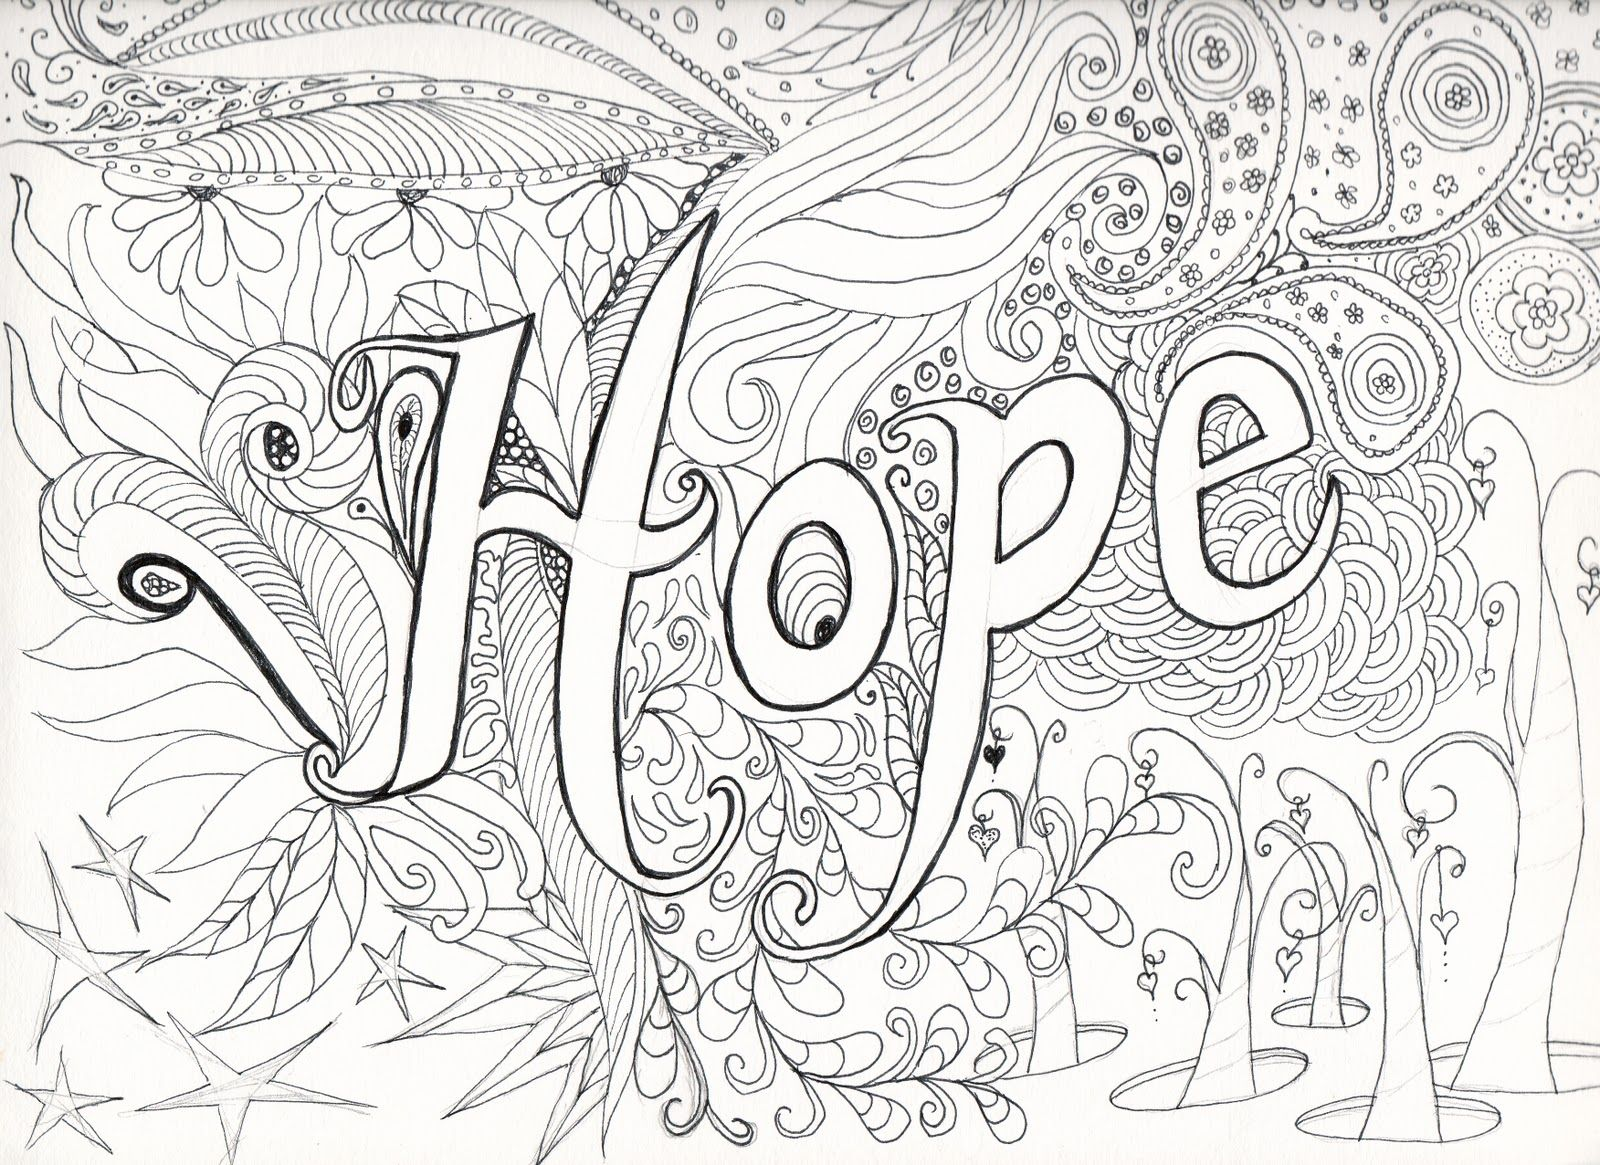 Hard Coloring Pages Abstract Coloring Pages Detailed Coloring